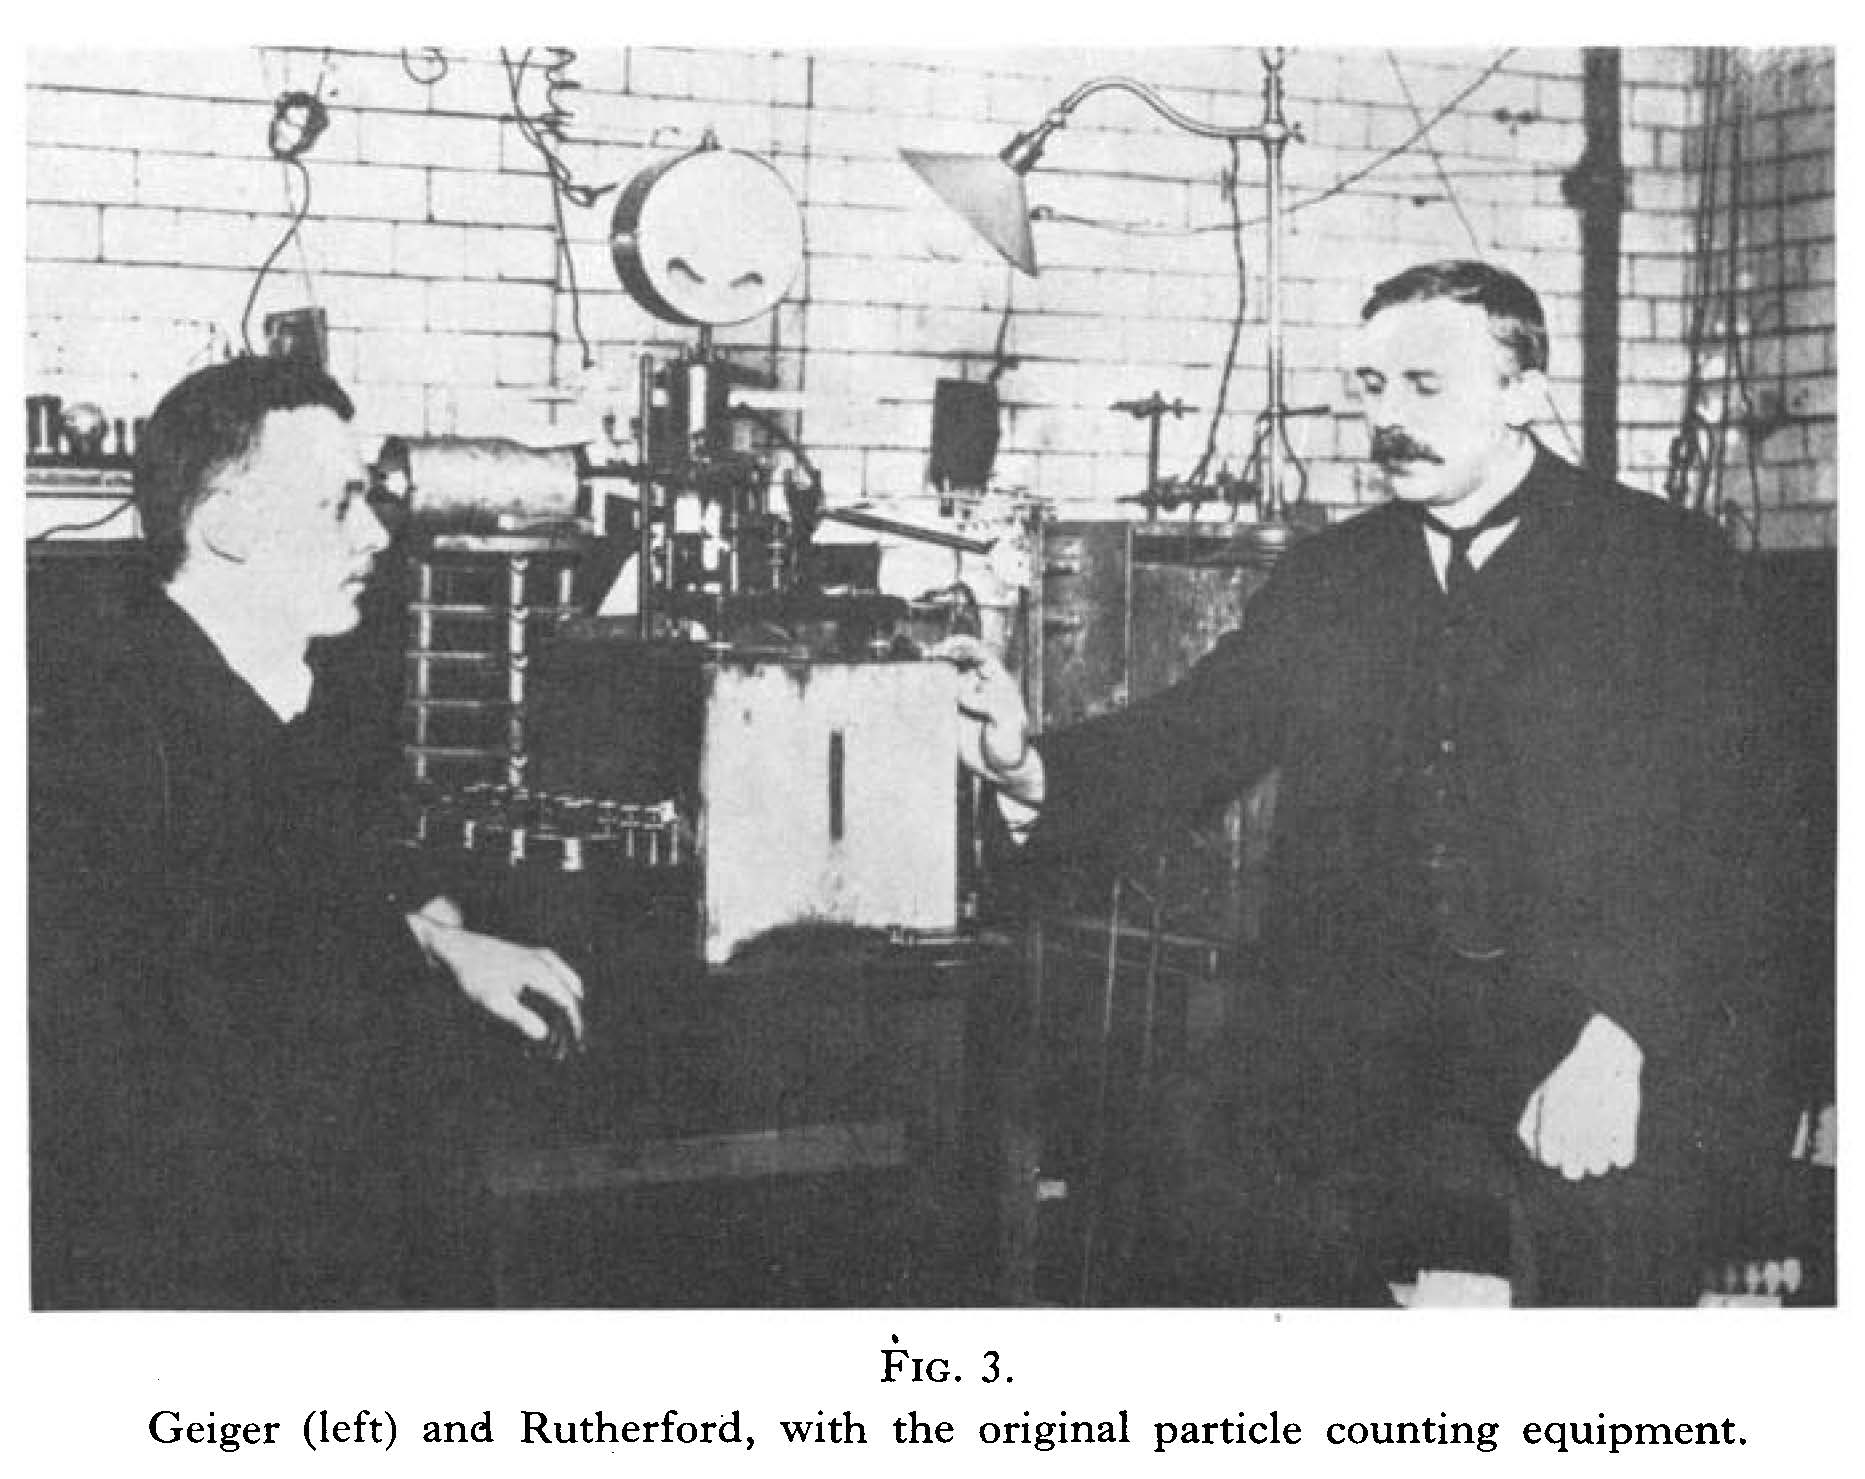 Radiotherapy - original particle counting equipment